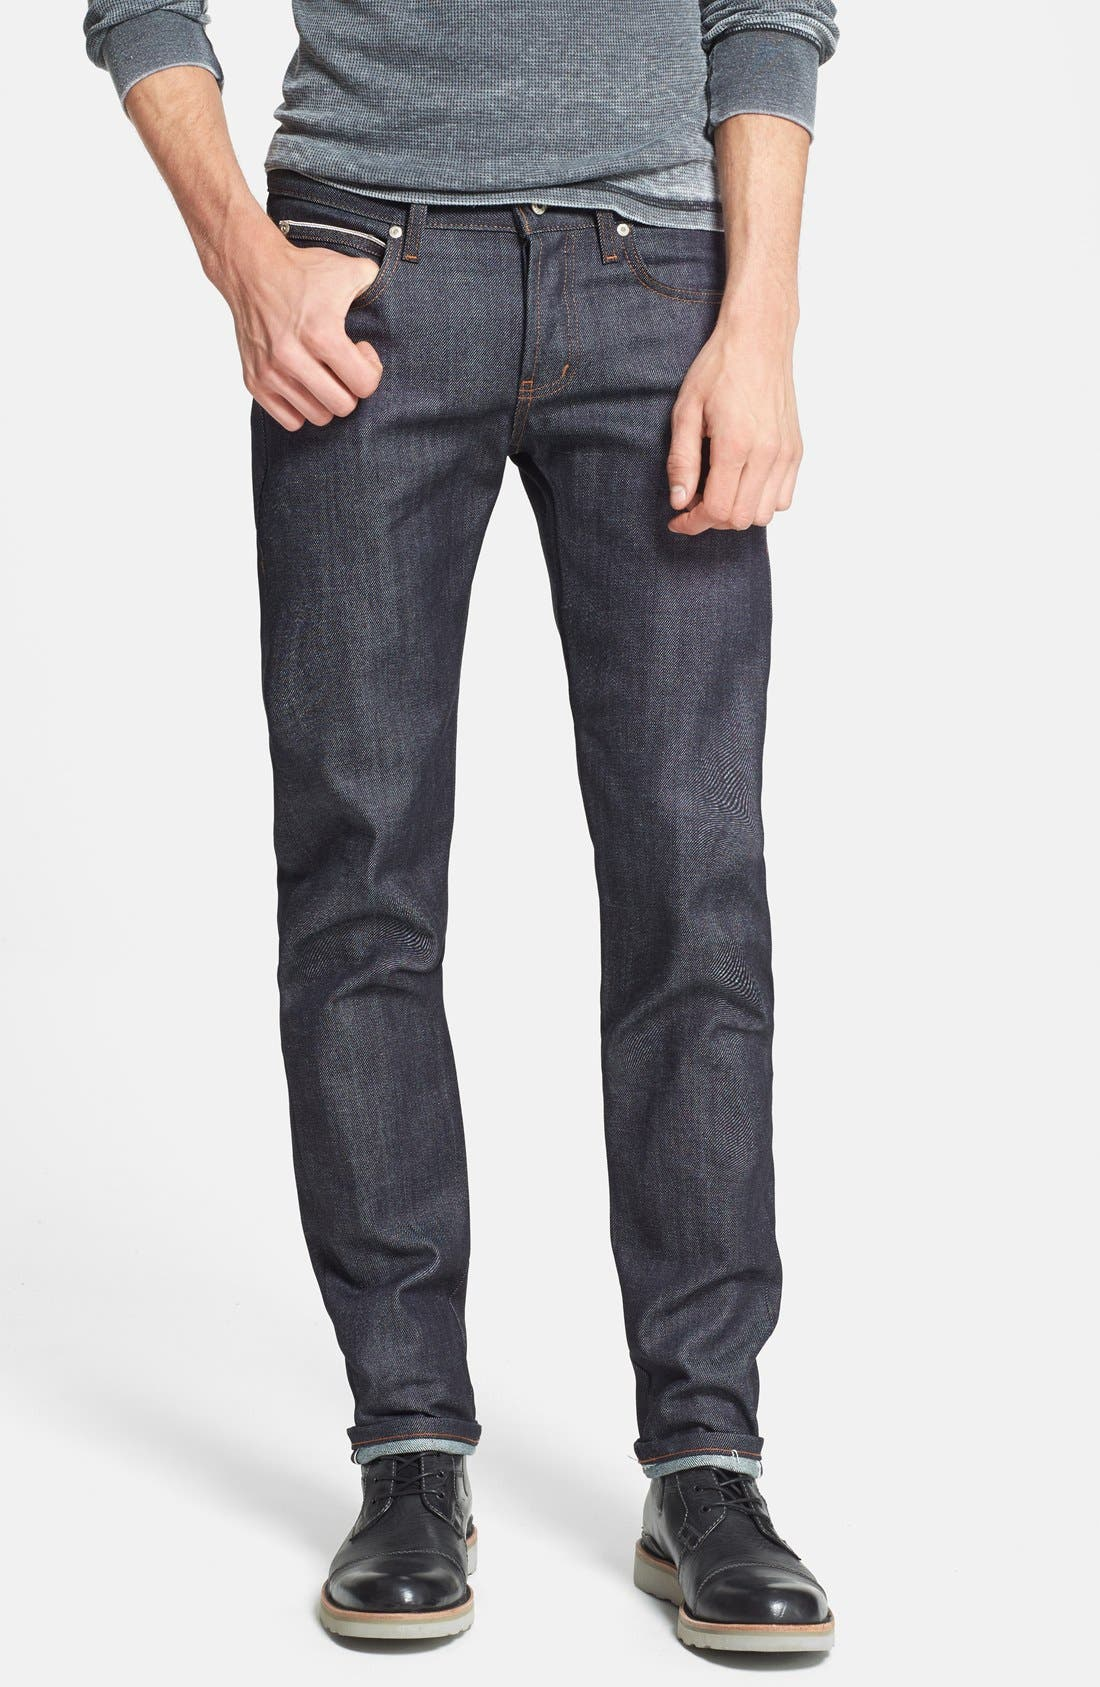 'Super Skinny Guy' Skinny Fit Jeans,                             Main thumbnail 1, color,                             401